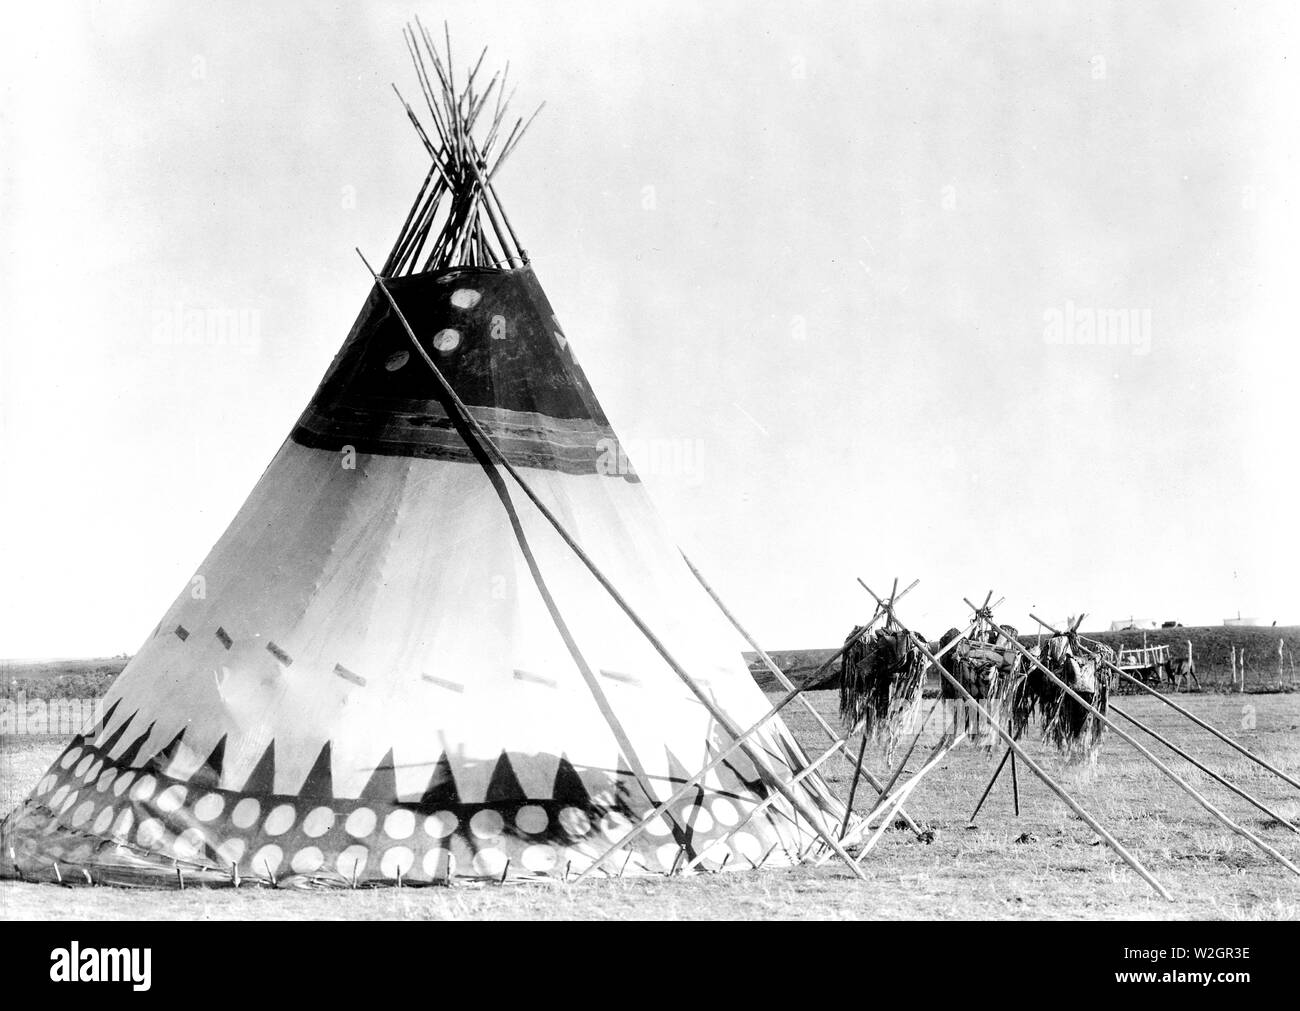 Edward S. Curits Native American Indians - Tepee on the plains of Alberta, Canada ca. 1927 - Stock Image